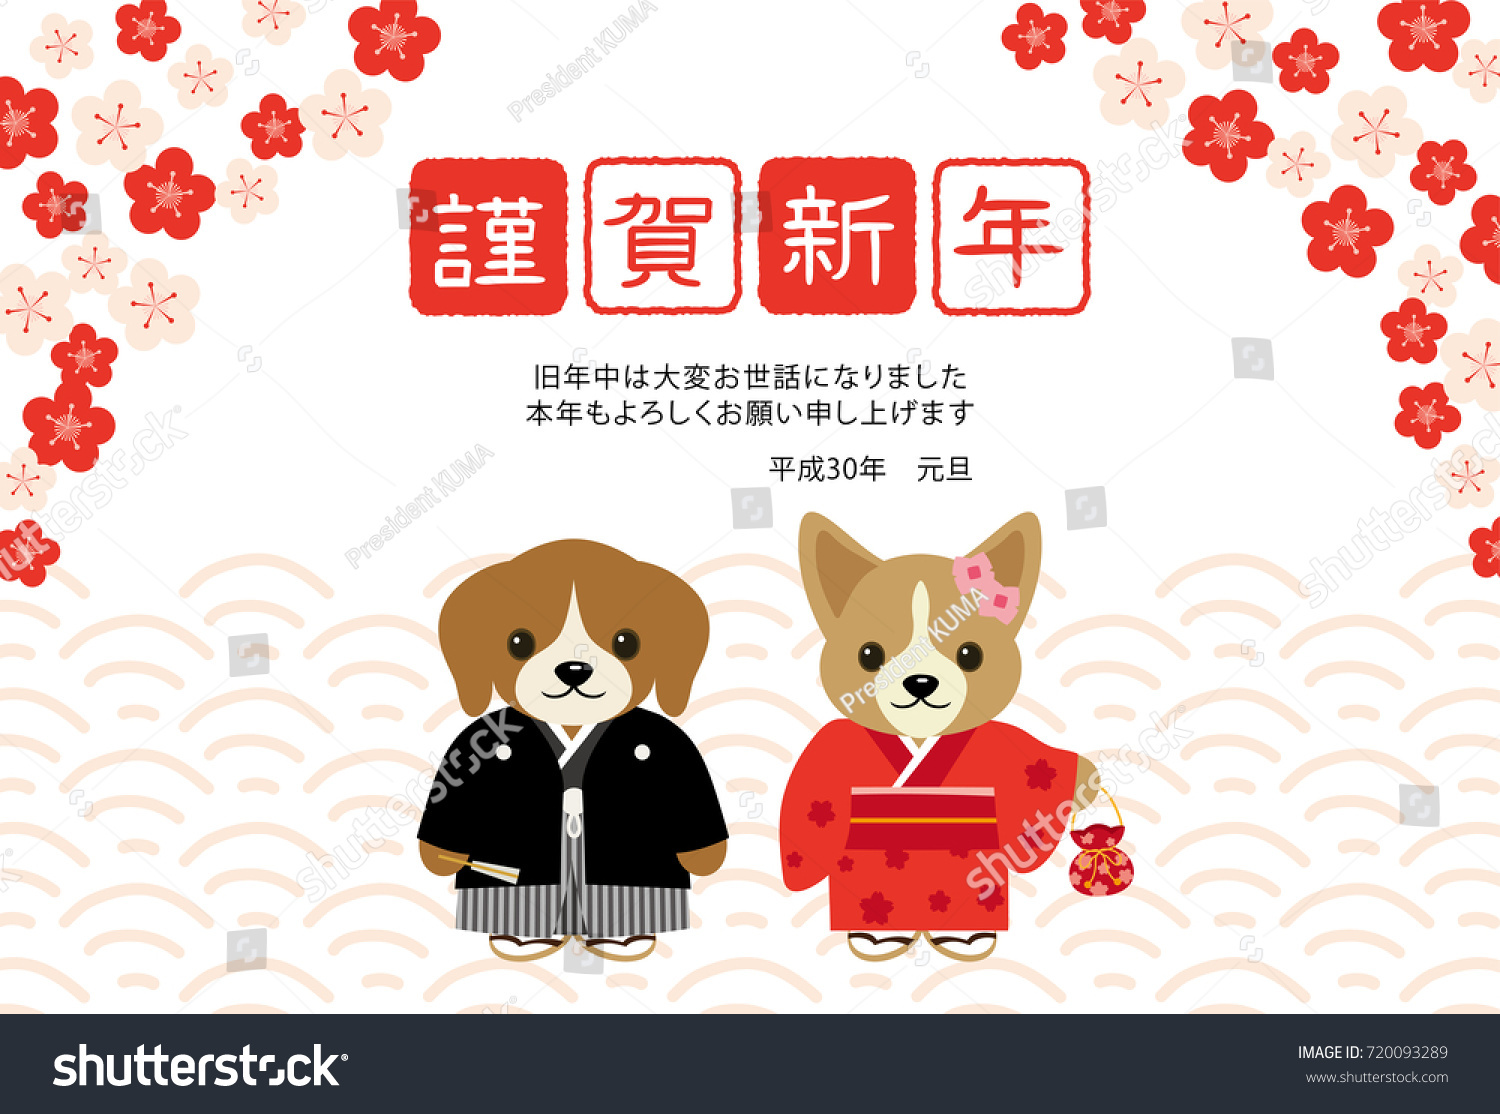 Japanese New Year Calendar : Japanese new year s day images